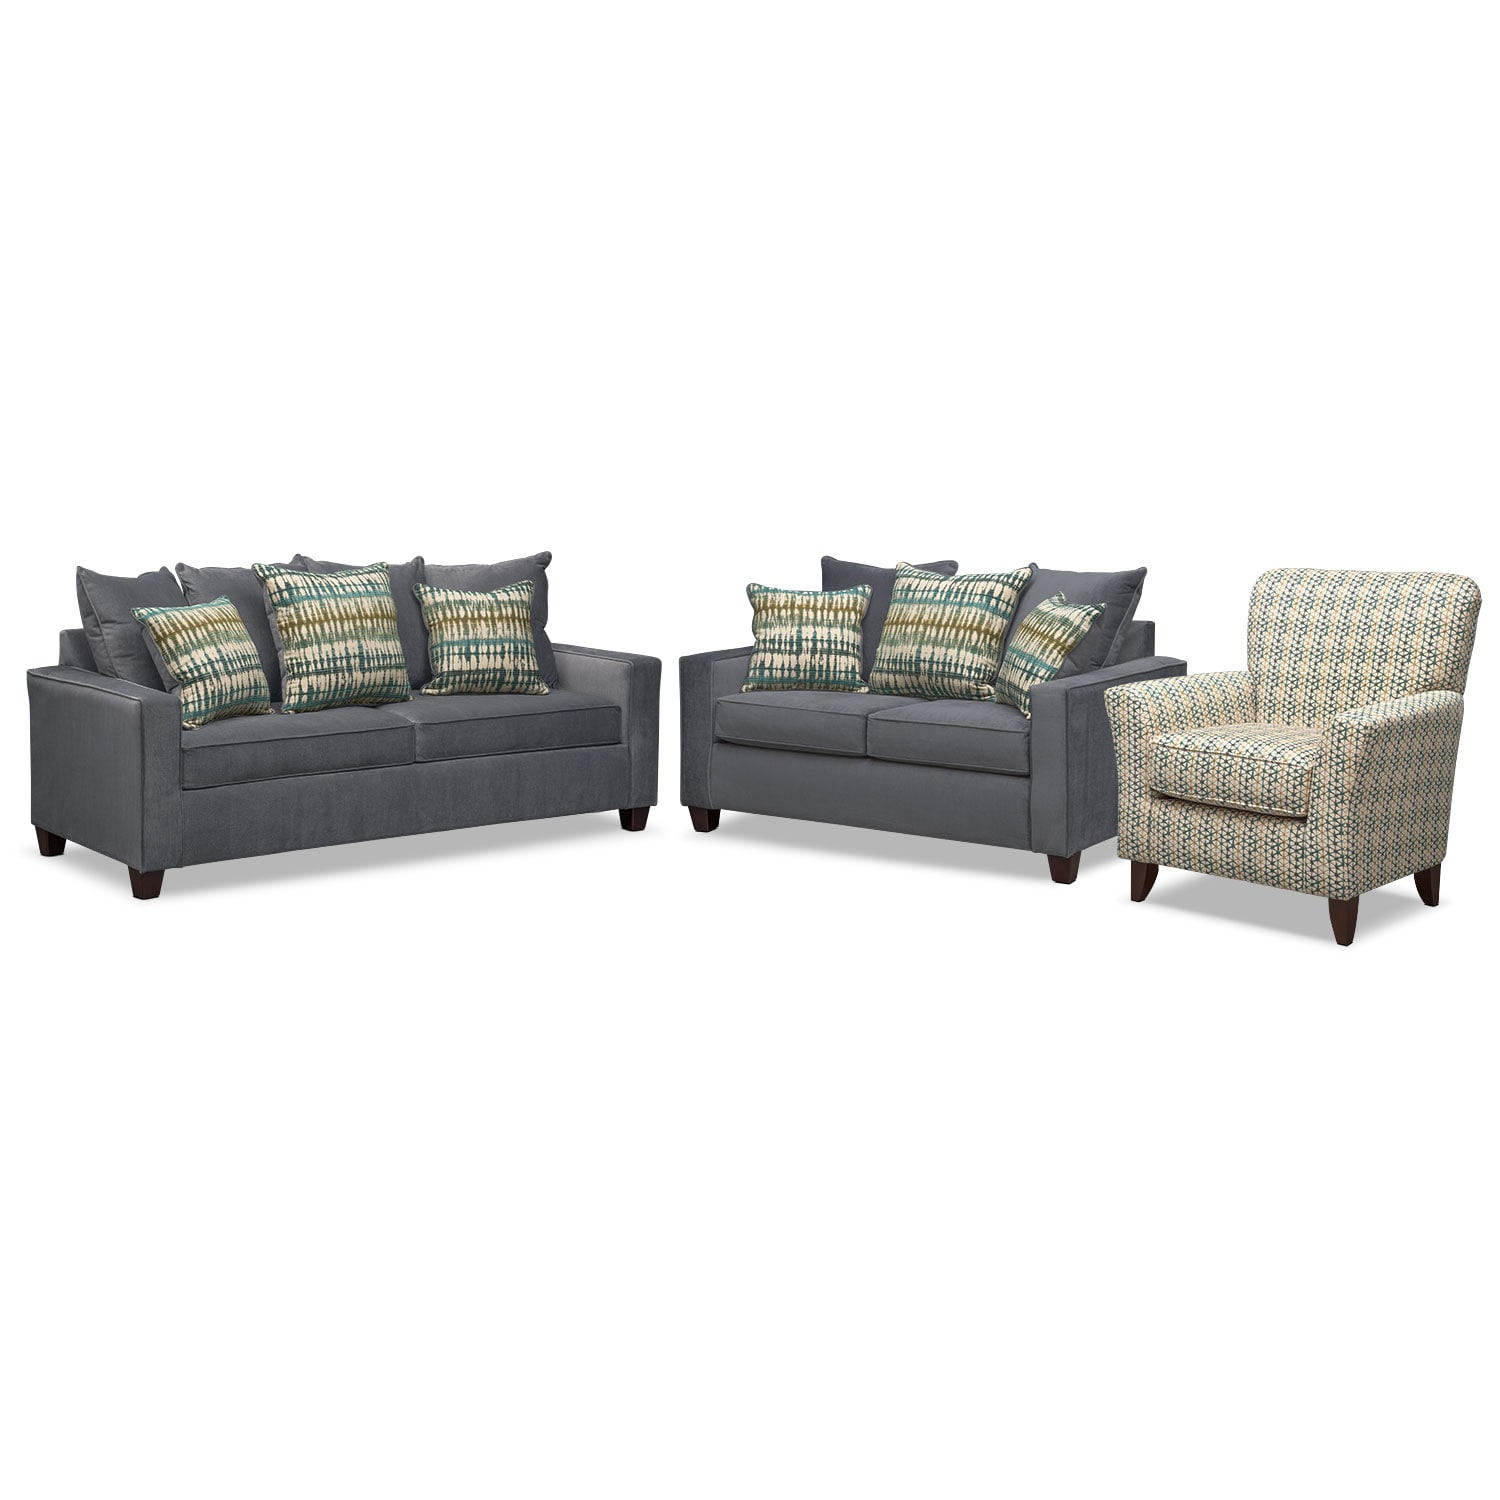 Bryden Queen Memory Foam Sleeper Sofa, Loveseat And Accent Chair Set   Slate